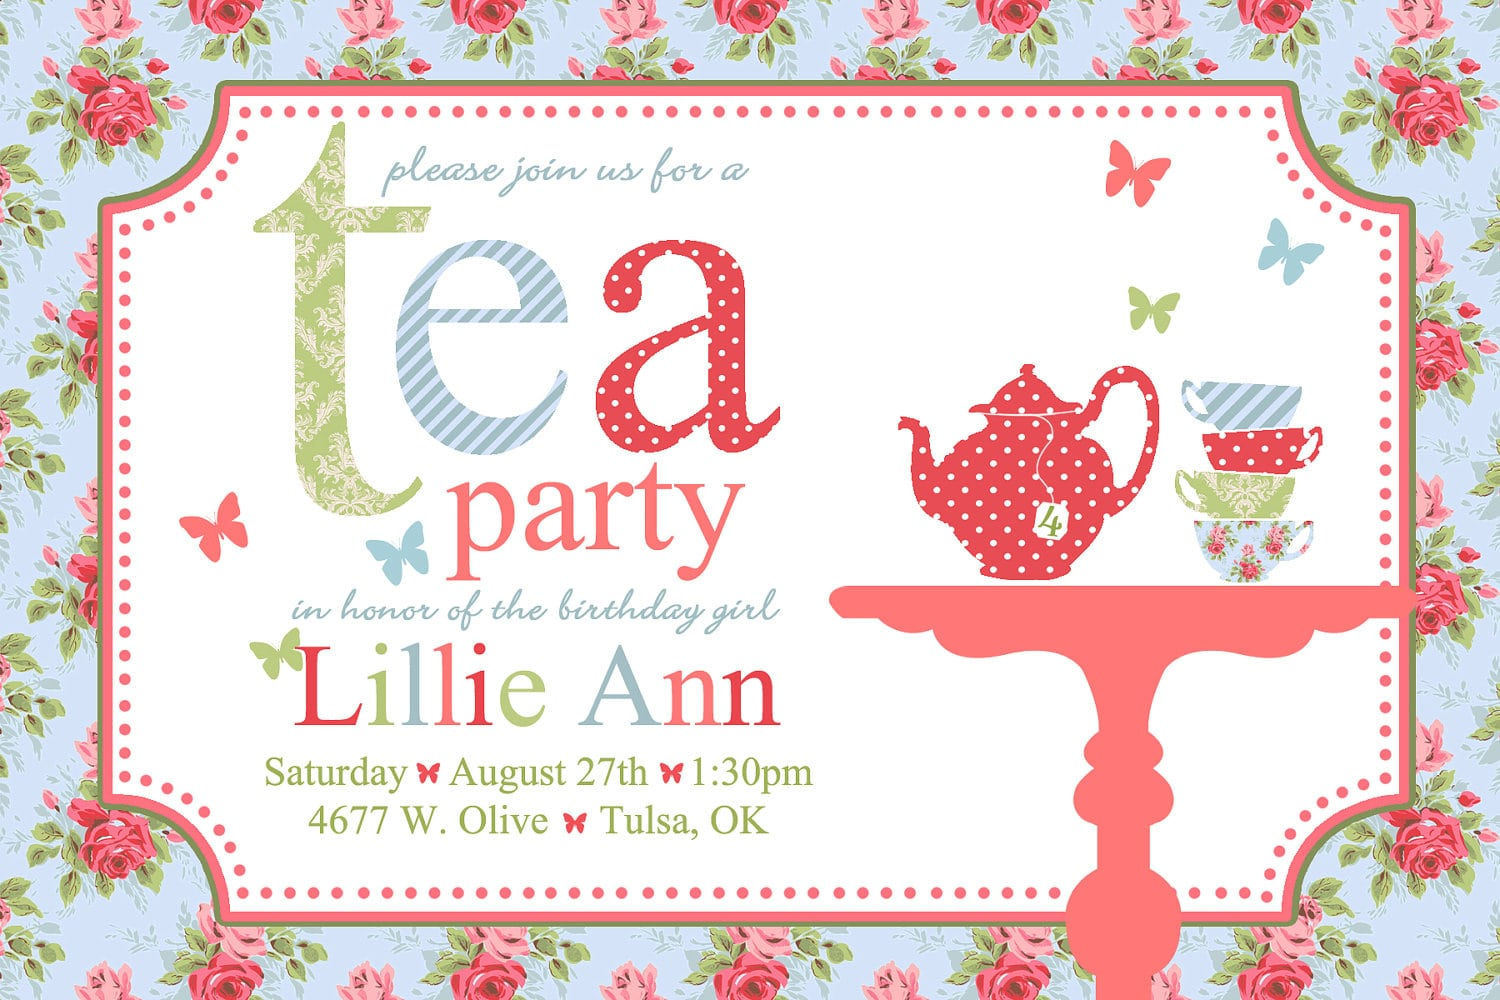 Tea Party Invitation Card With Nice Wording Template   Momecard